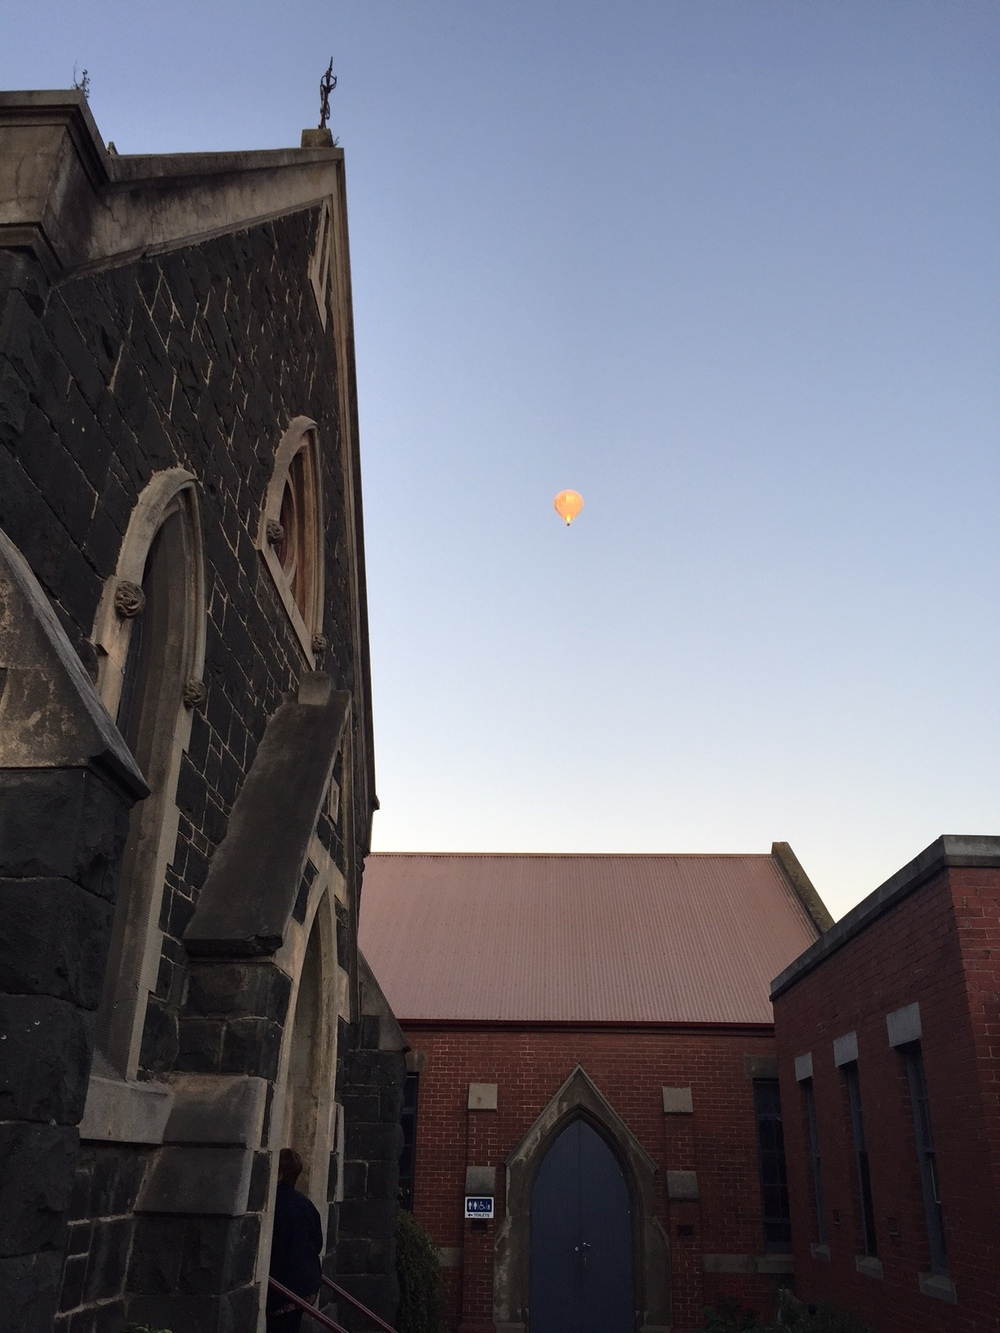 A hot air balloon greets us as we join for meditation early one Tuesday morning. photo AEC 2016